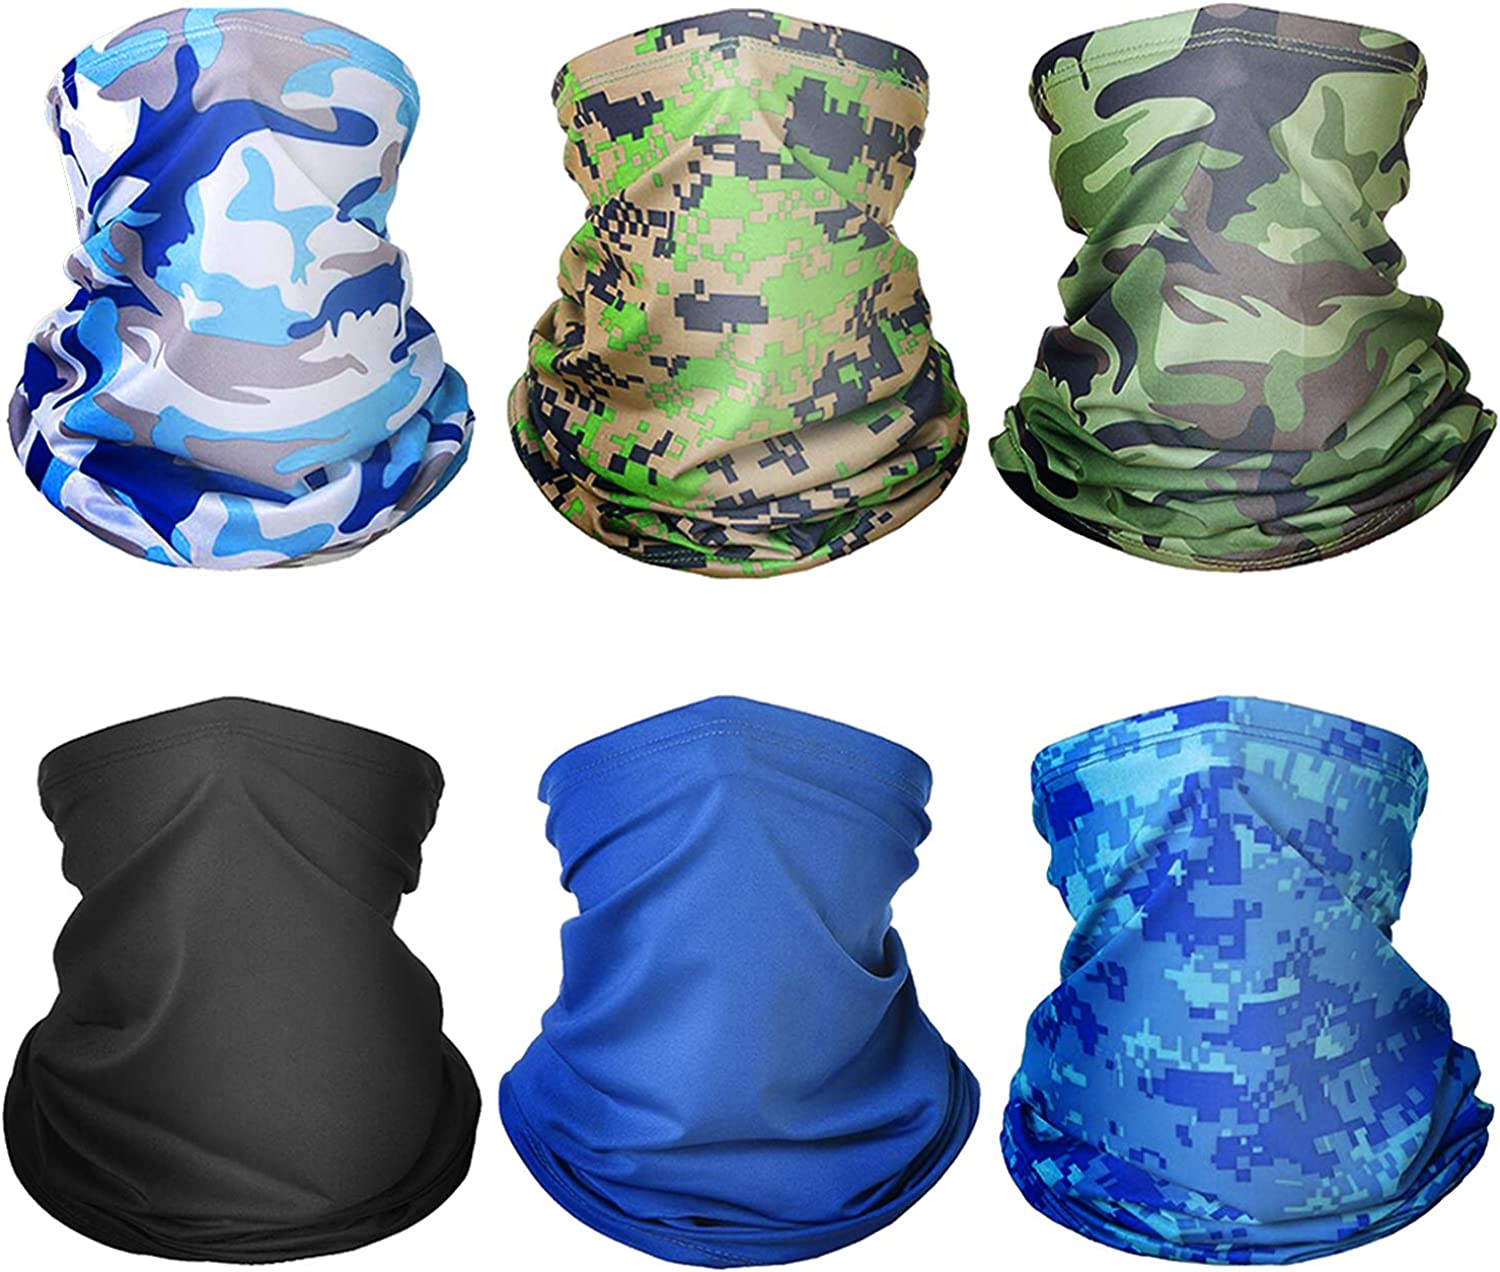 6 Pieces Seamless Bandana Face Mouth Mask,UV Protection Outdoor Face Cover Neck Gaiter Sports Scarf for Motorcyle Cycling Running Riding